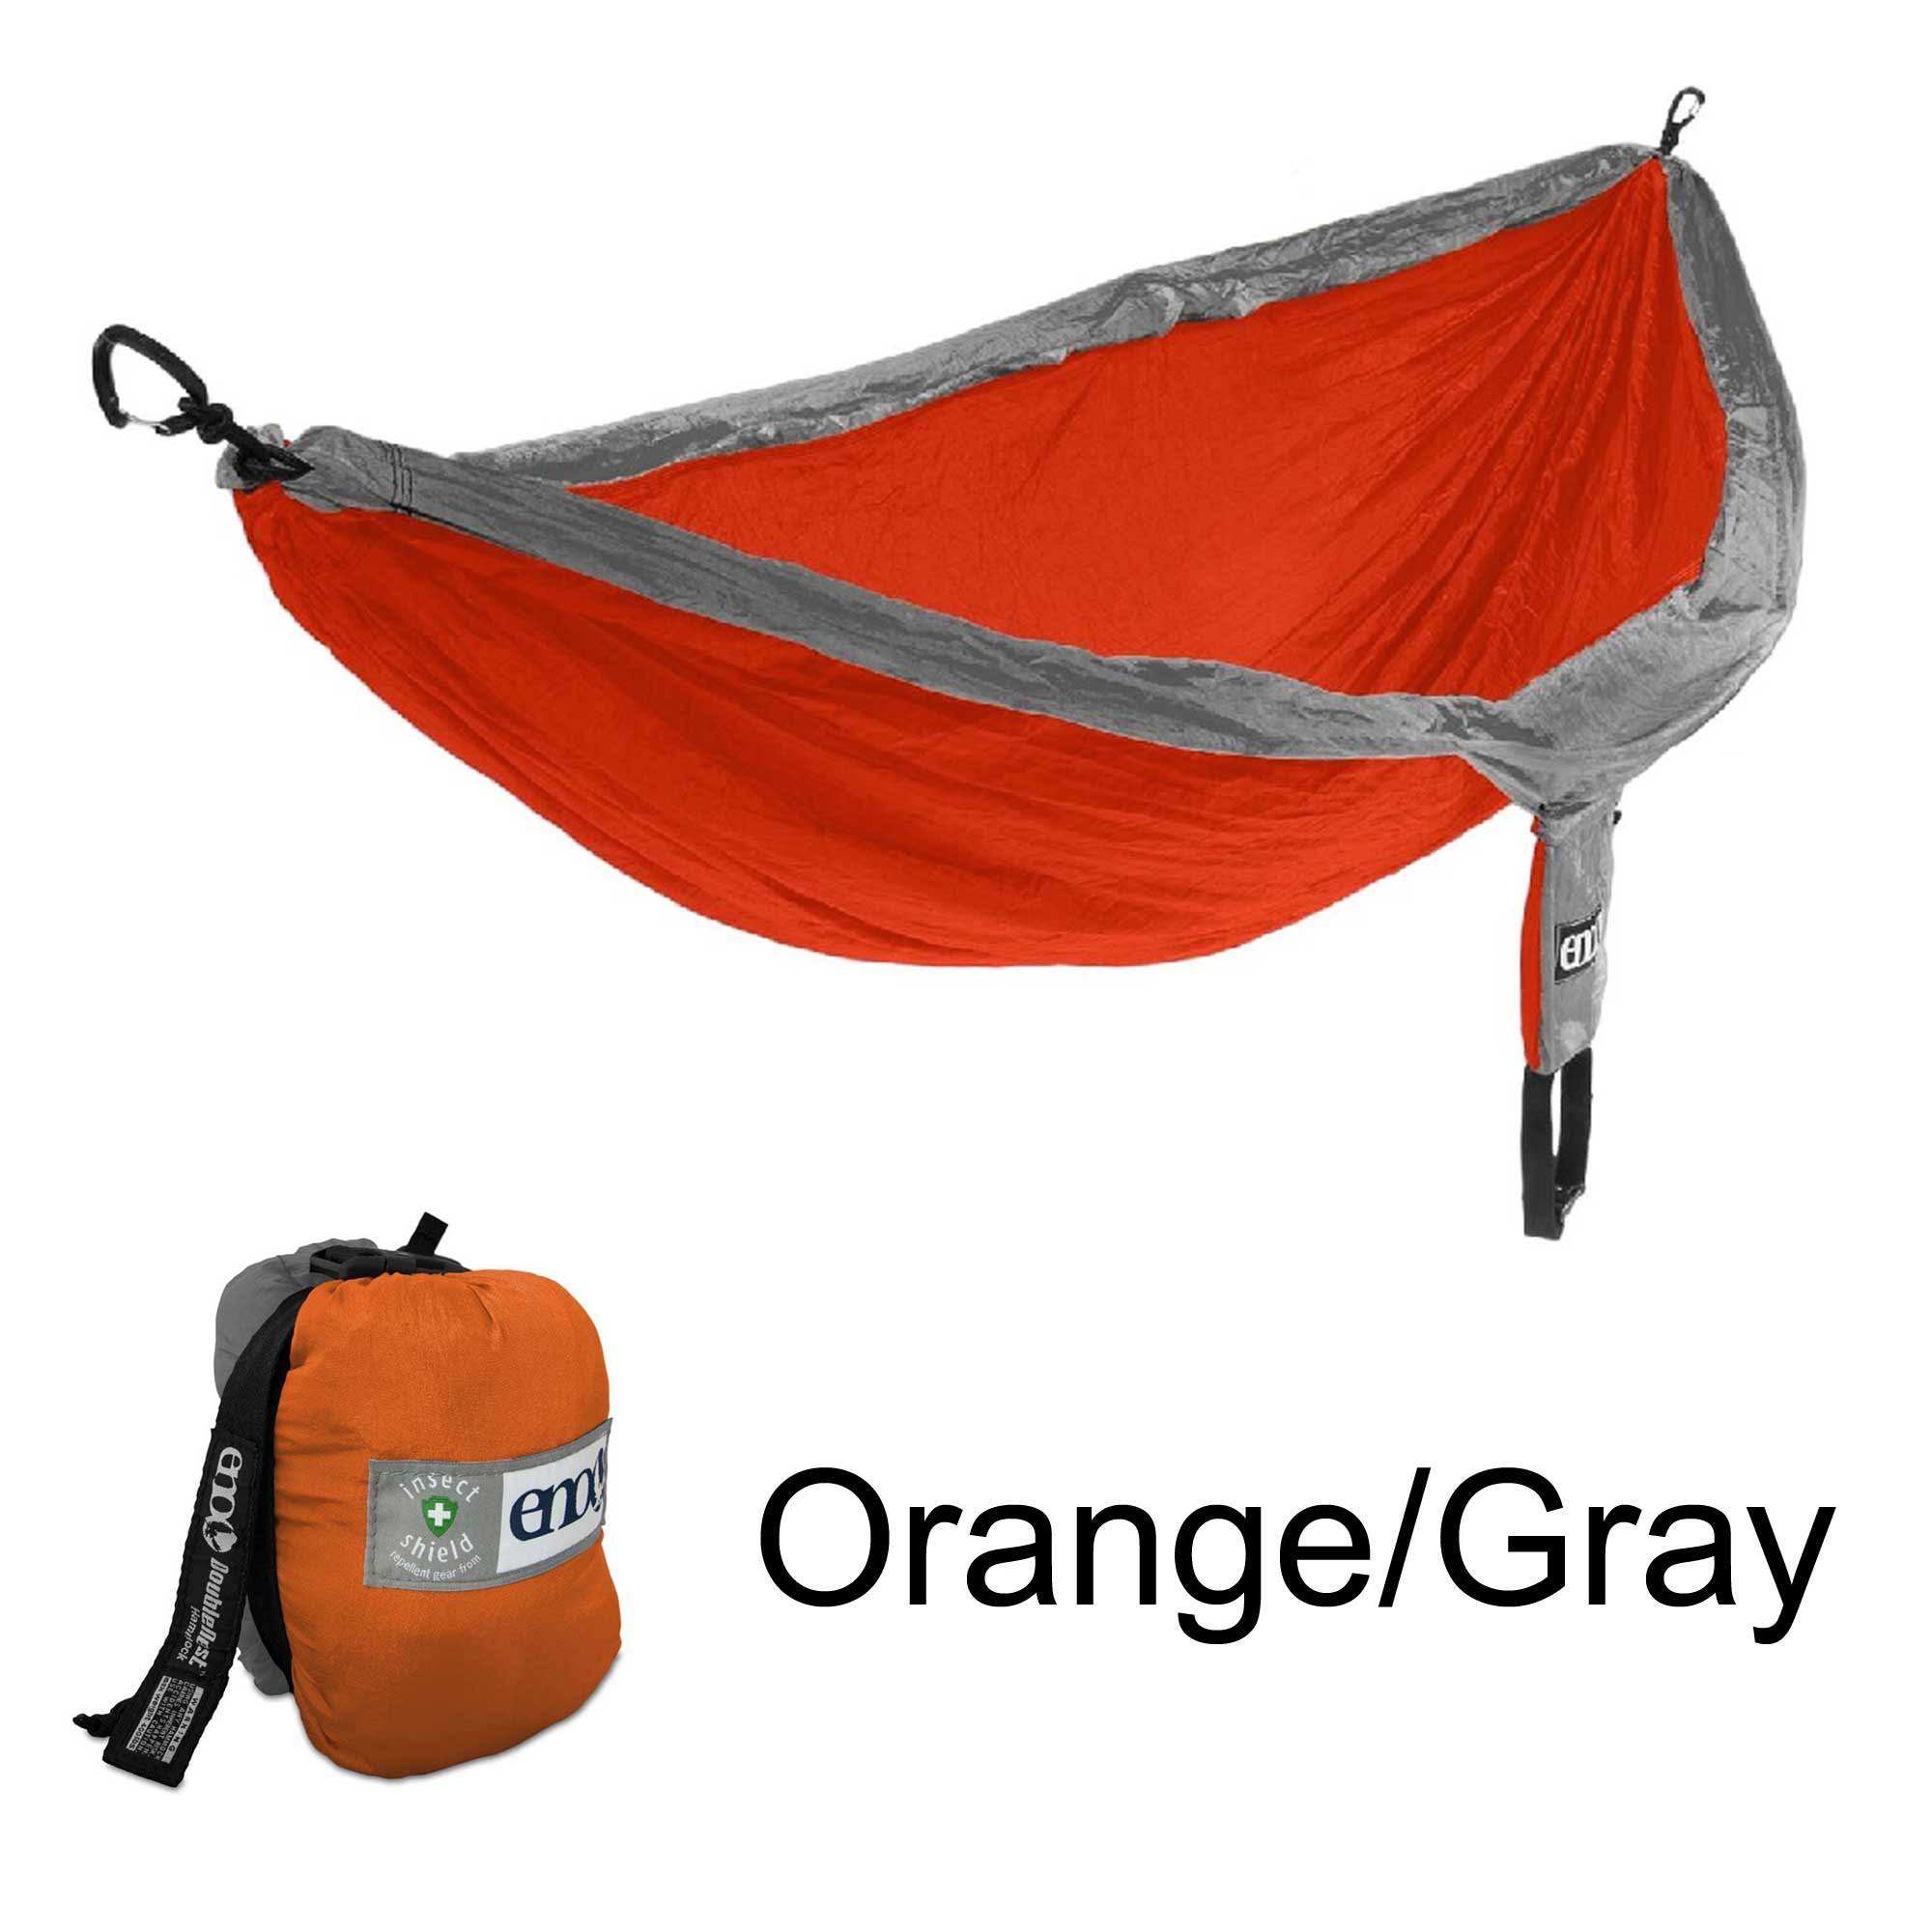 eno double nest hammock with insect shield eno double nest camping hammock  u0026 insect shield  rh   nagsheadhammocks